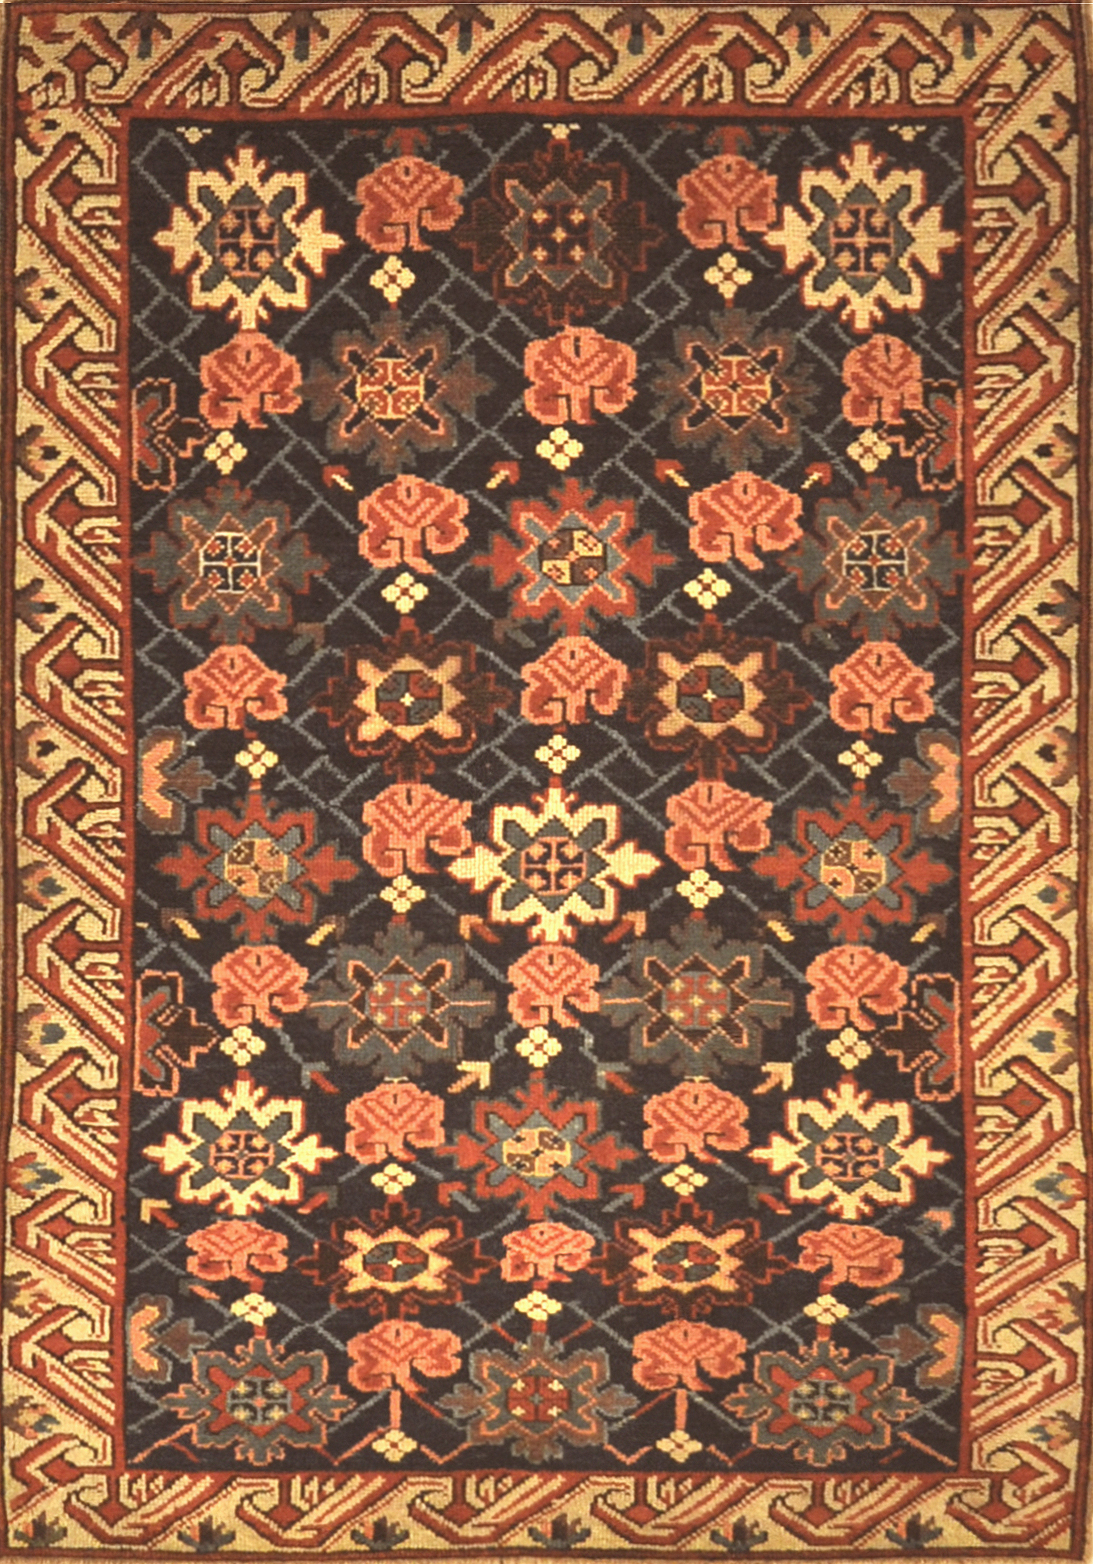 Antique Seichur Kuba Western Flowers Rug. A piece of genuine authentic antique woven carpet art sold by the Santa Barbara Design Center, Rugs and More.